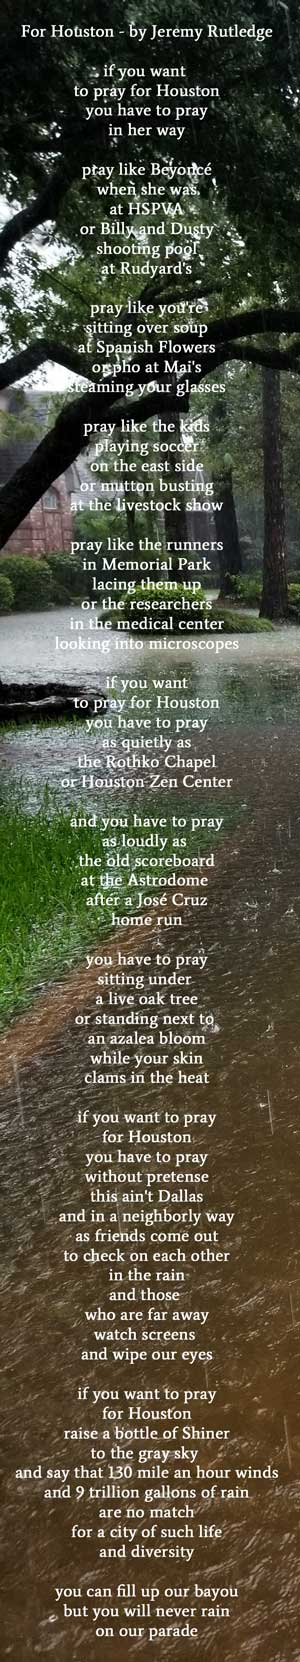 if you want to pray for Houston